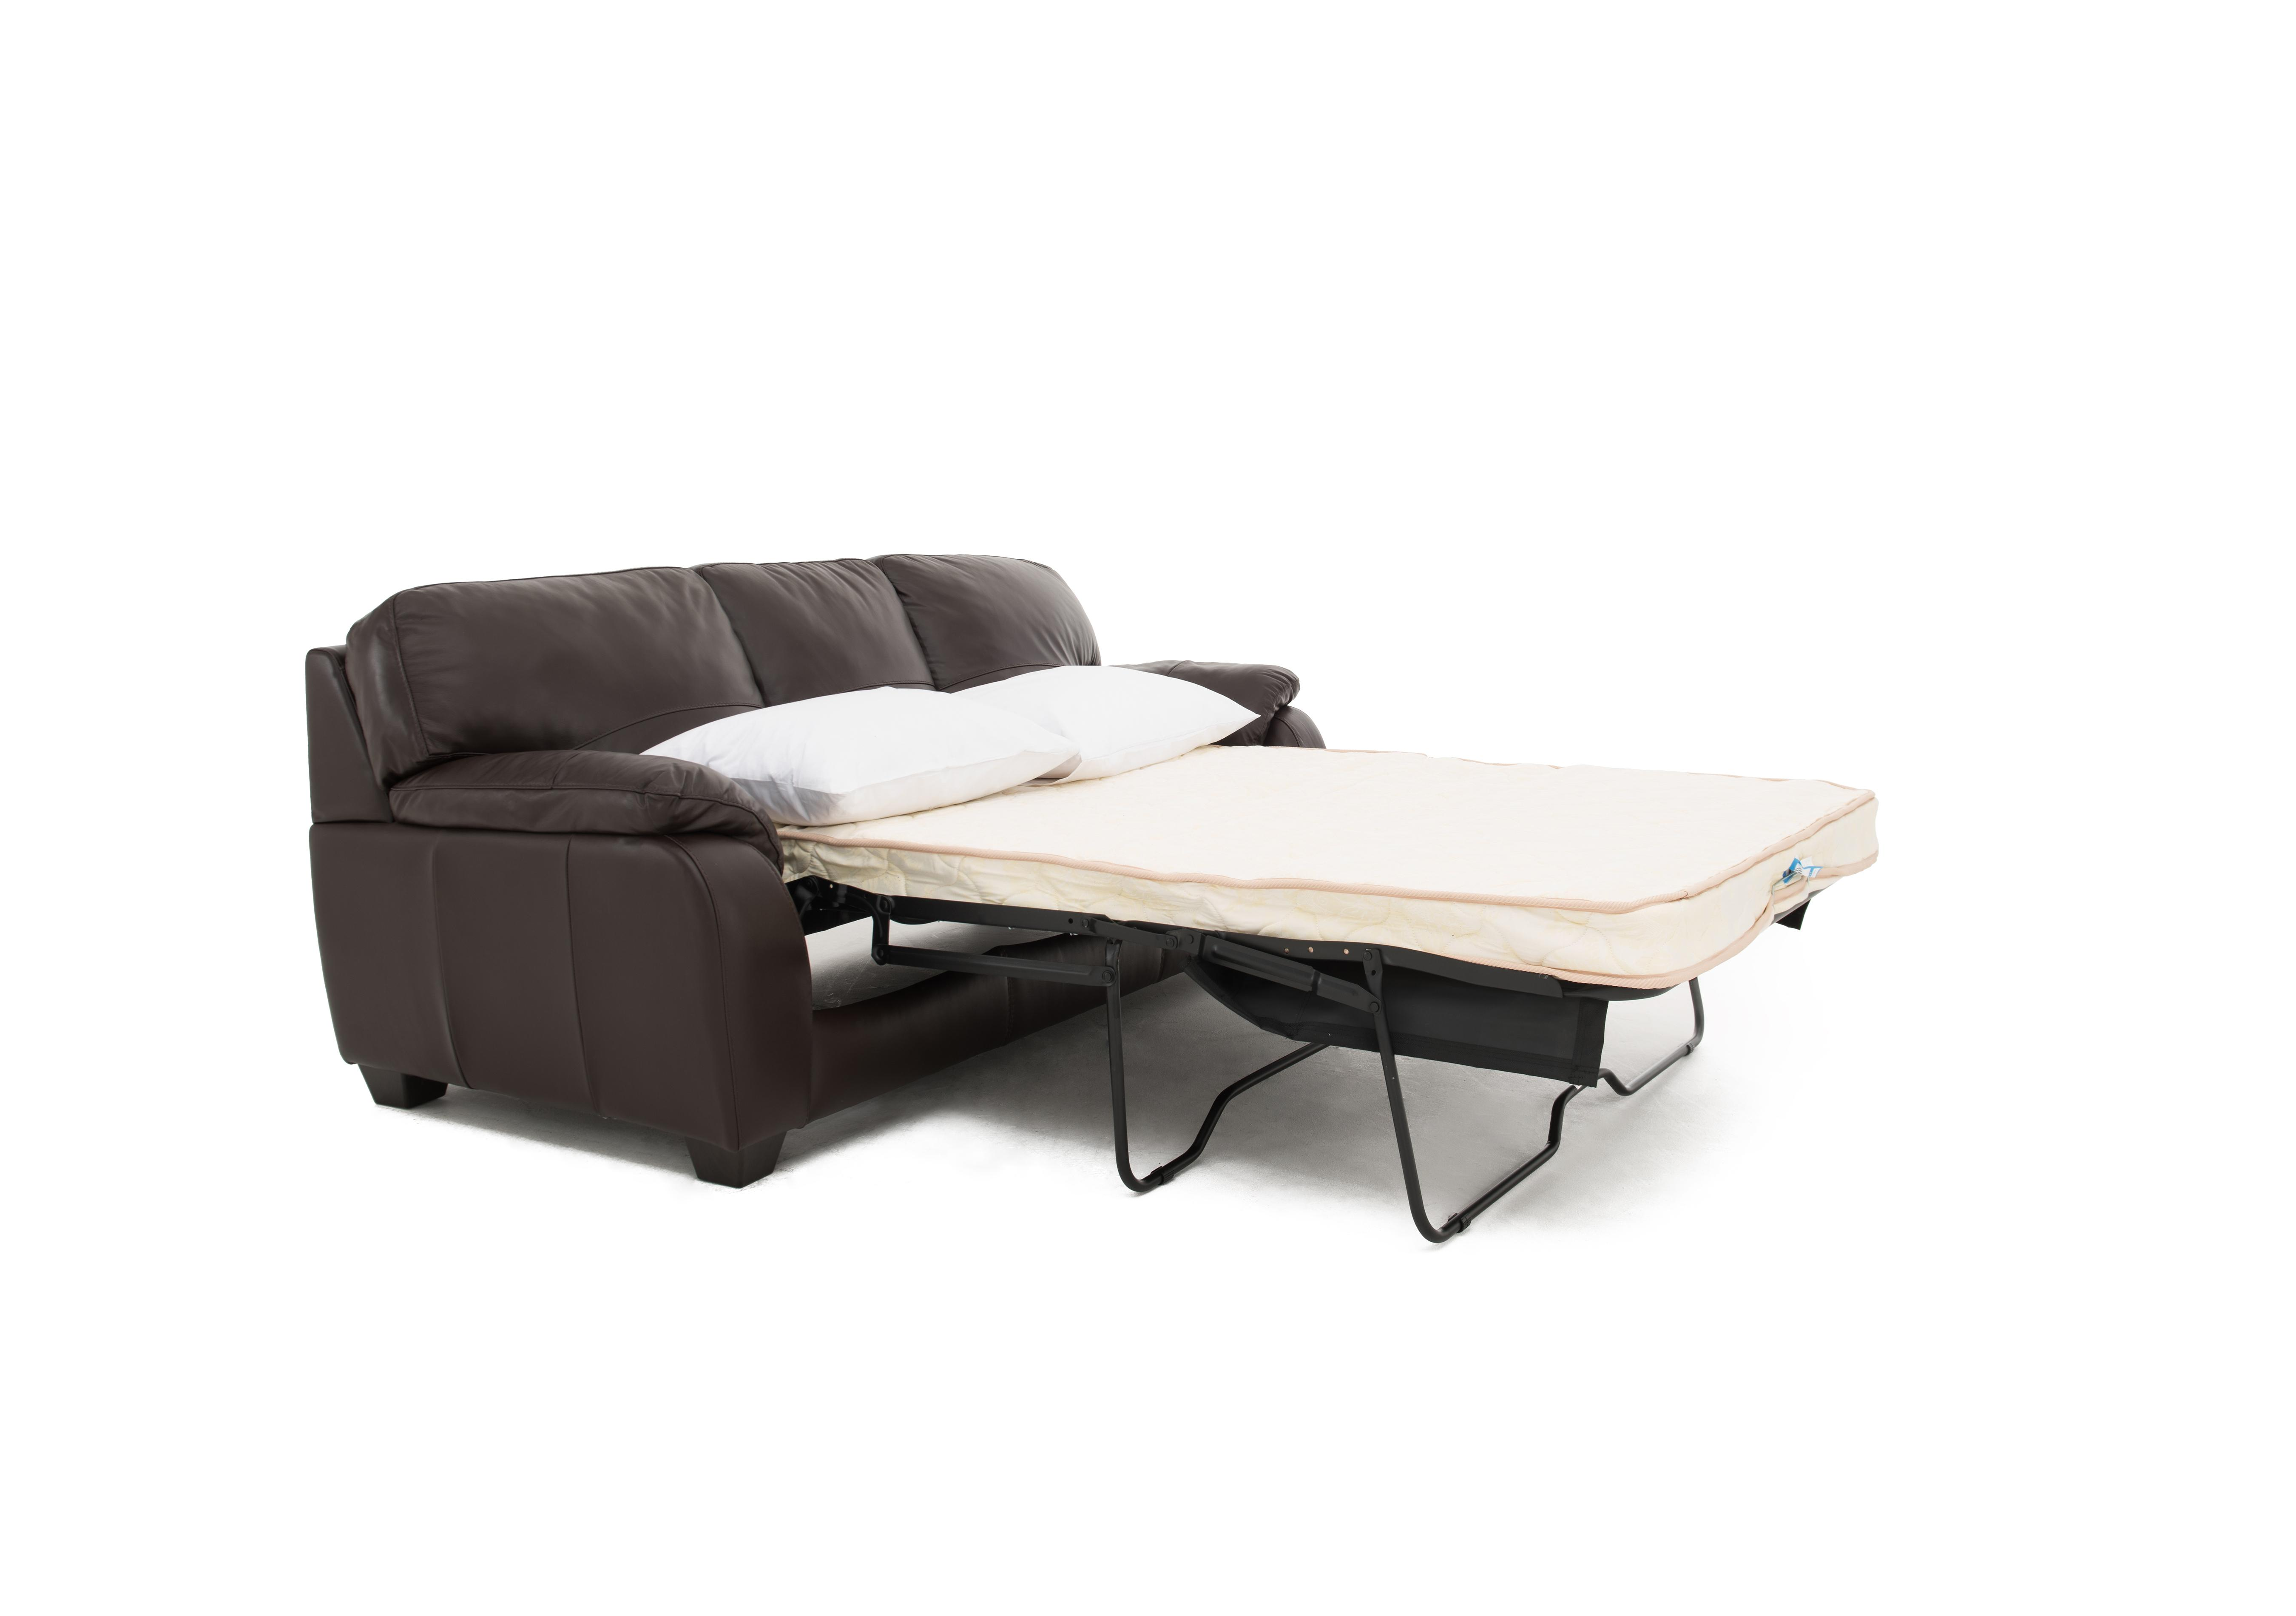 moods 3 seater leather sofa bed costco ca world of furniture village